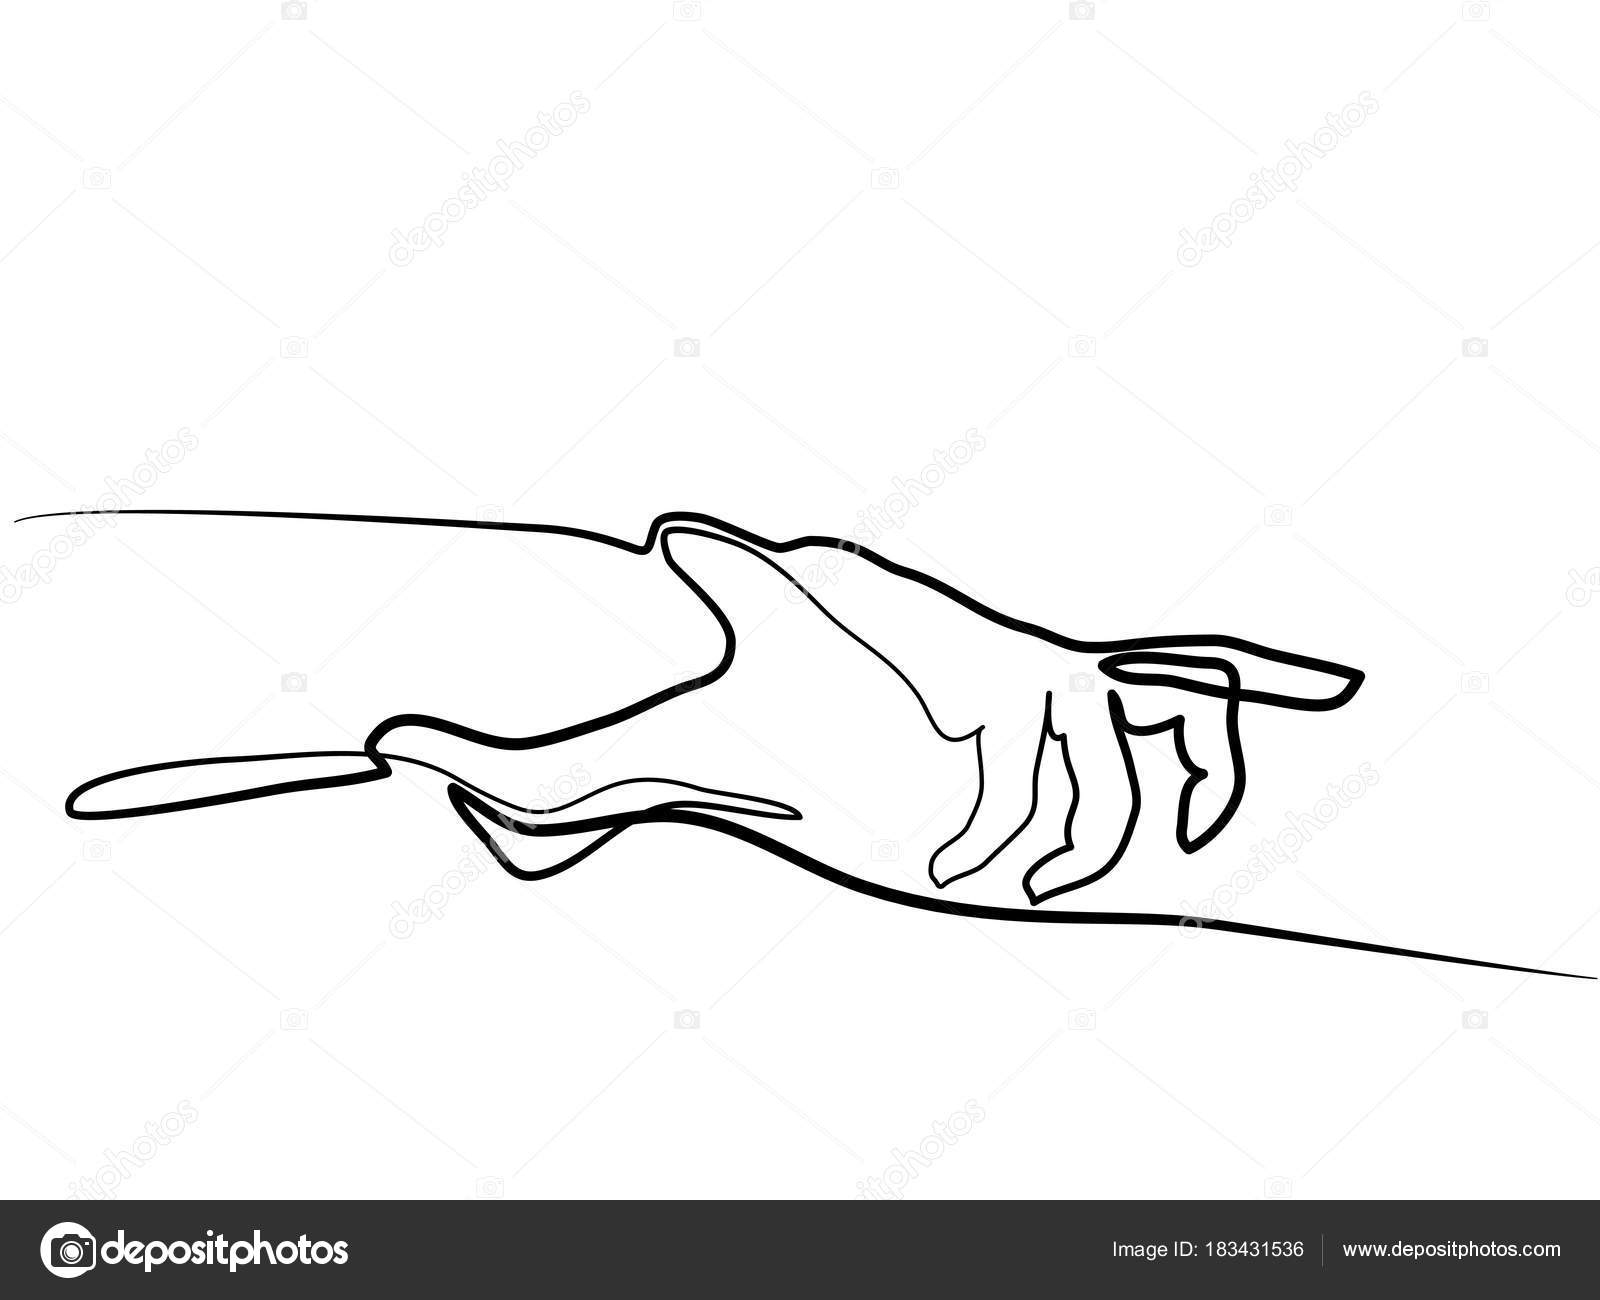 Line Drawing Holding Hands : Continuous line drawing of holding hands together — stock